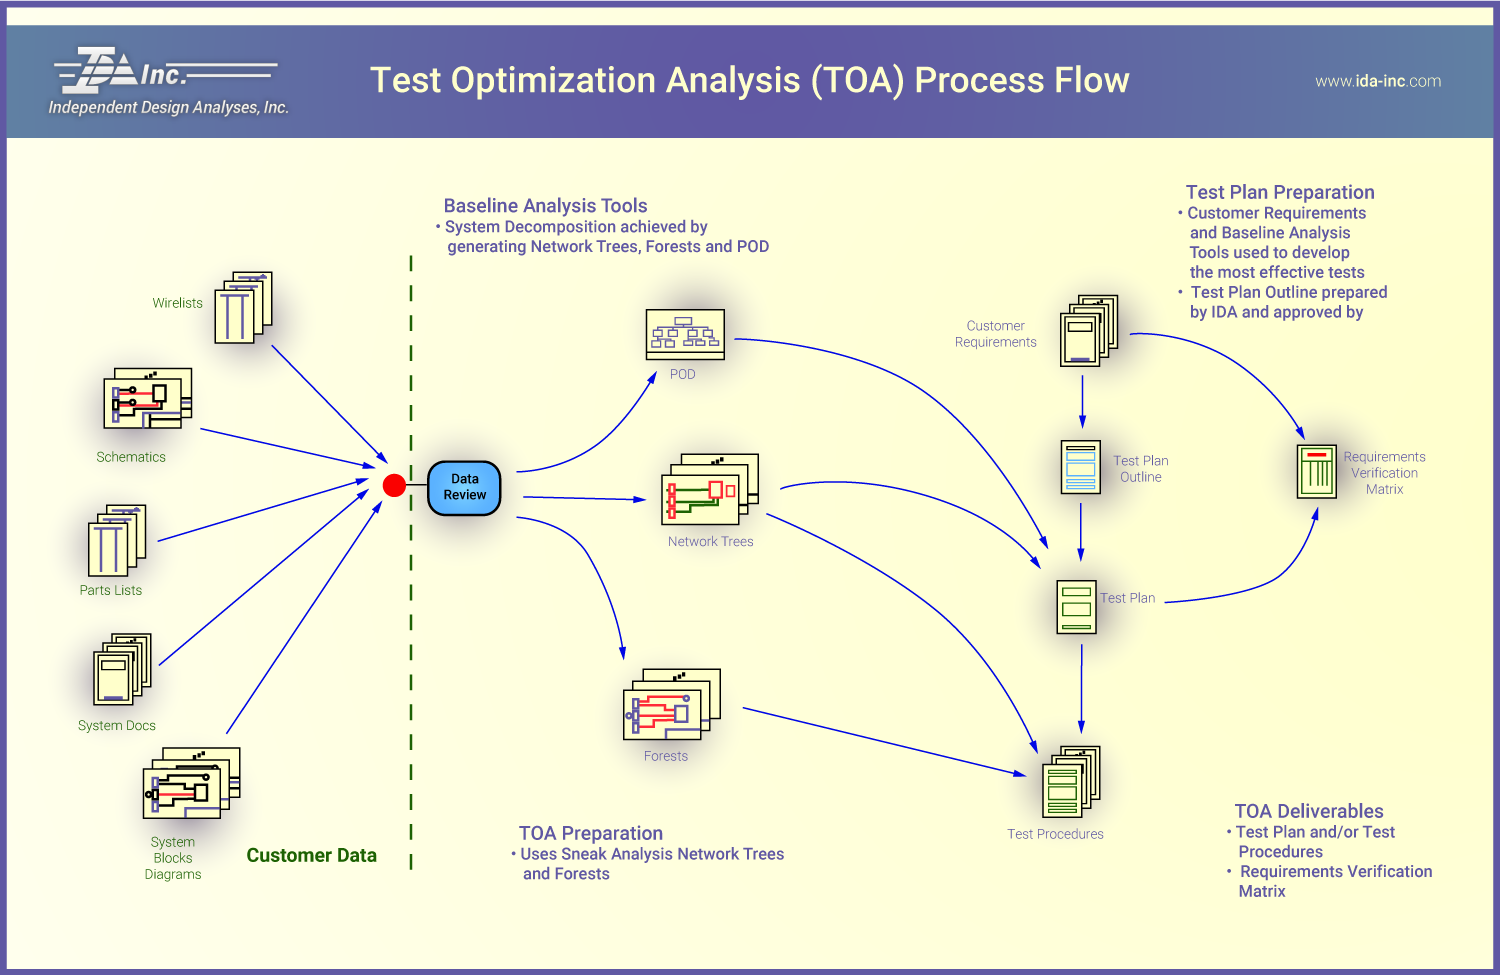 Test Optimization Analysis Process Flow - IDA Inc